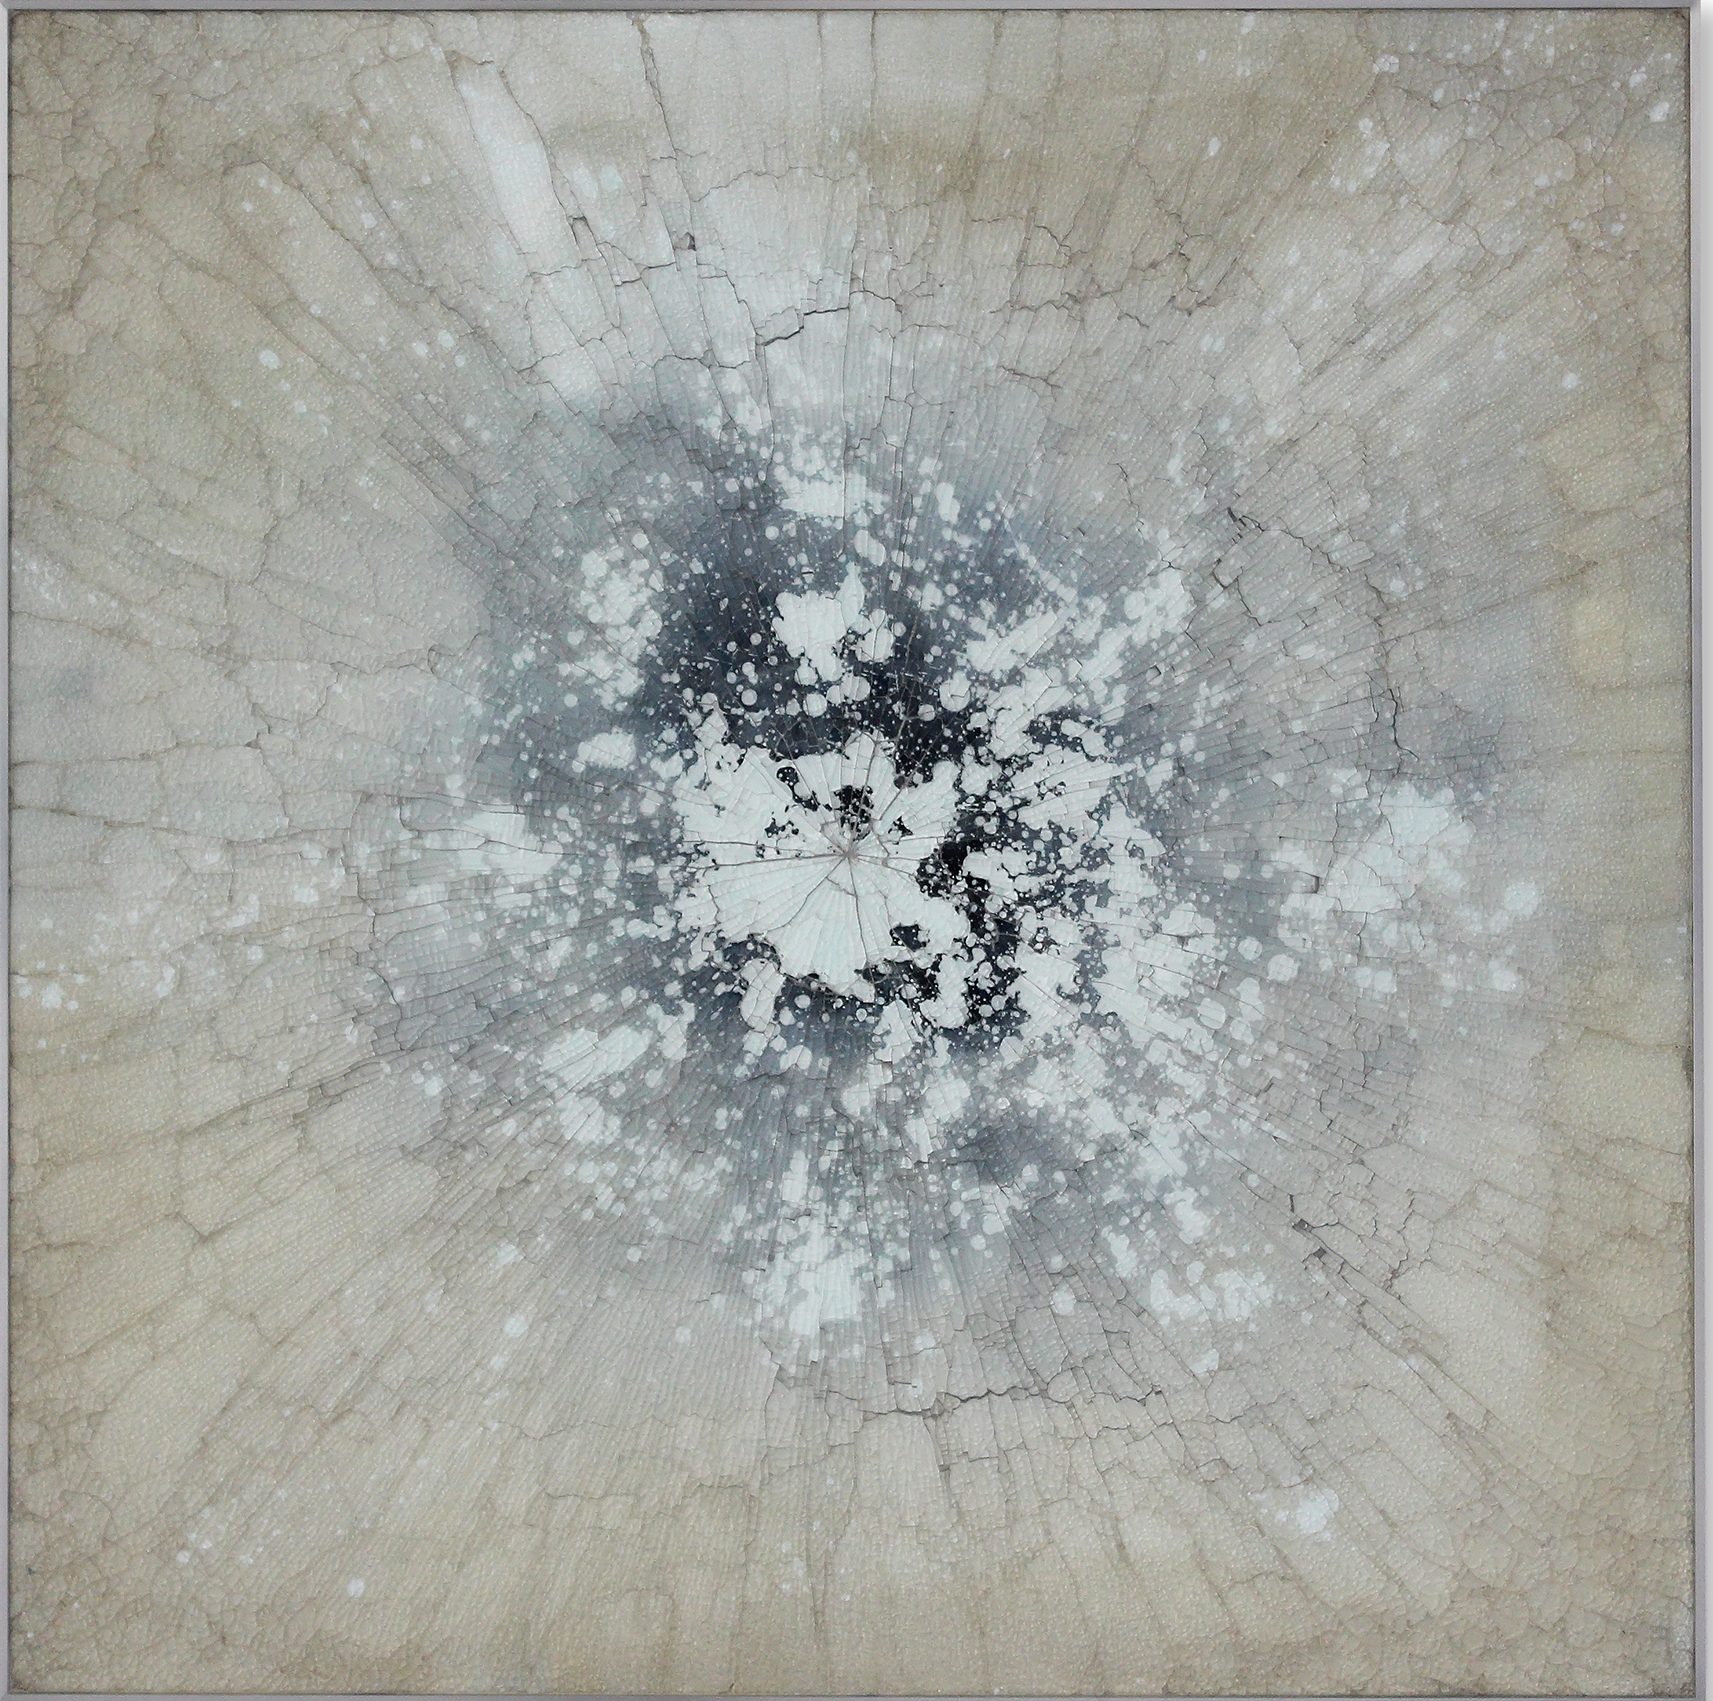 Kapnos 9-15 , 2015, reverse painted glass, 40 x 40 inches